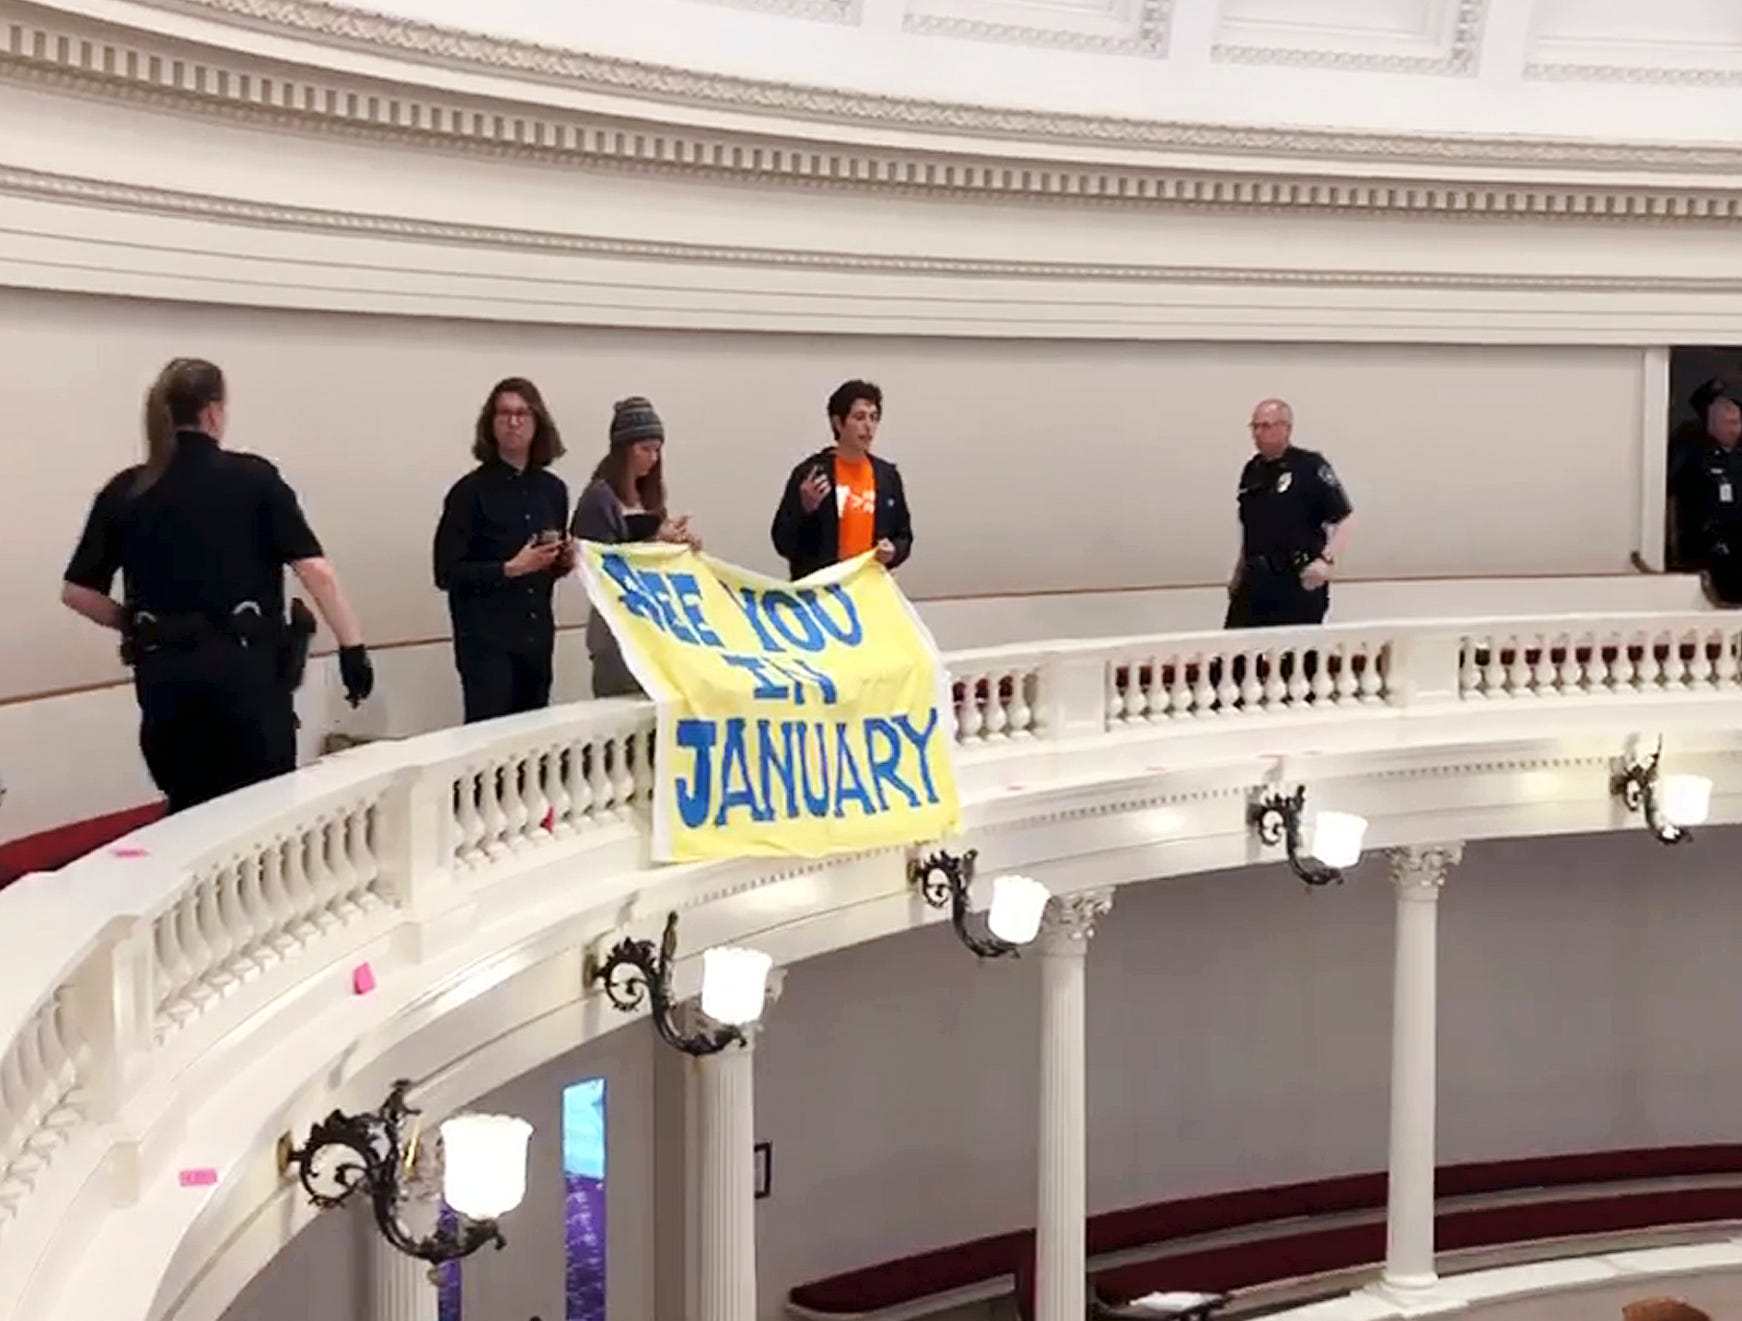 Climate protesters disrupt Vermont House session; 3 arrested